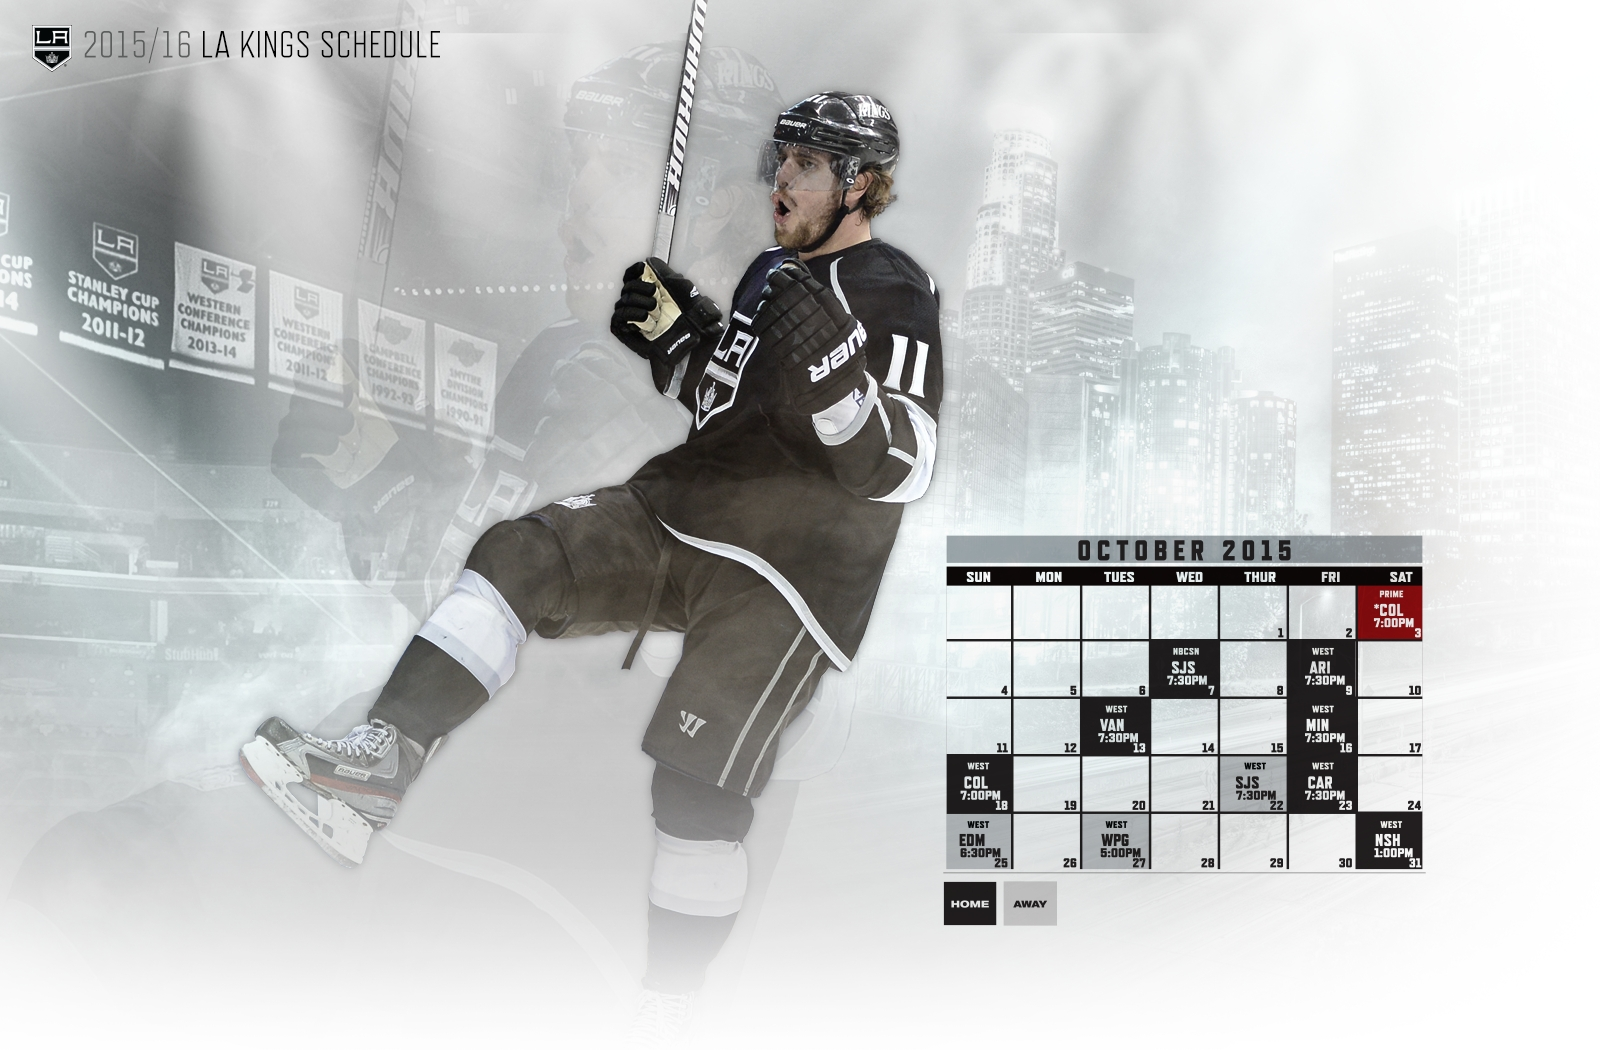 10 Best La Kings Schedule Wallpaper FULL HD 1920×1080 For PC Background